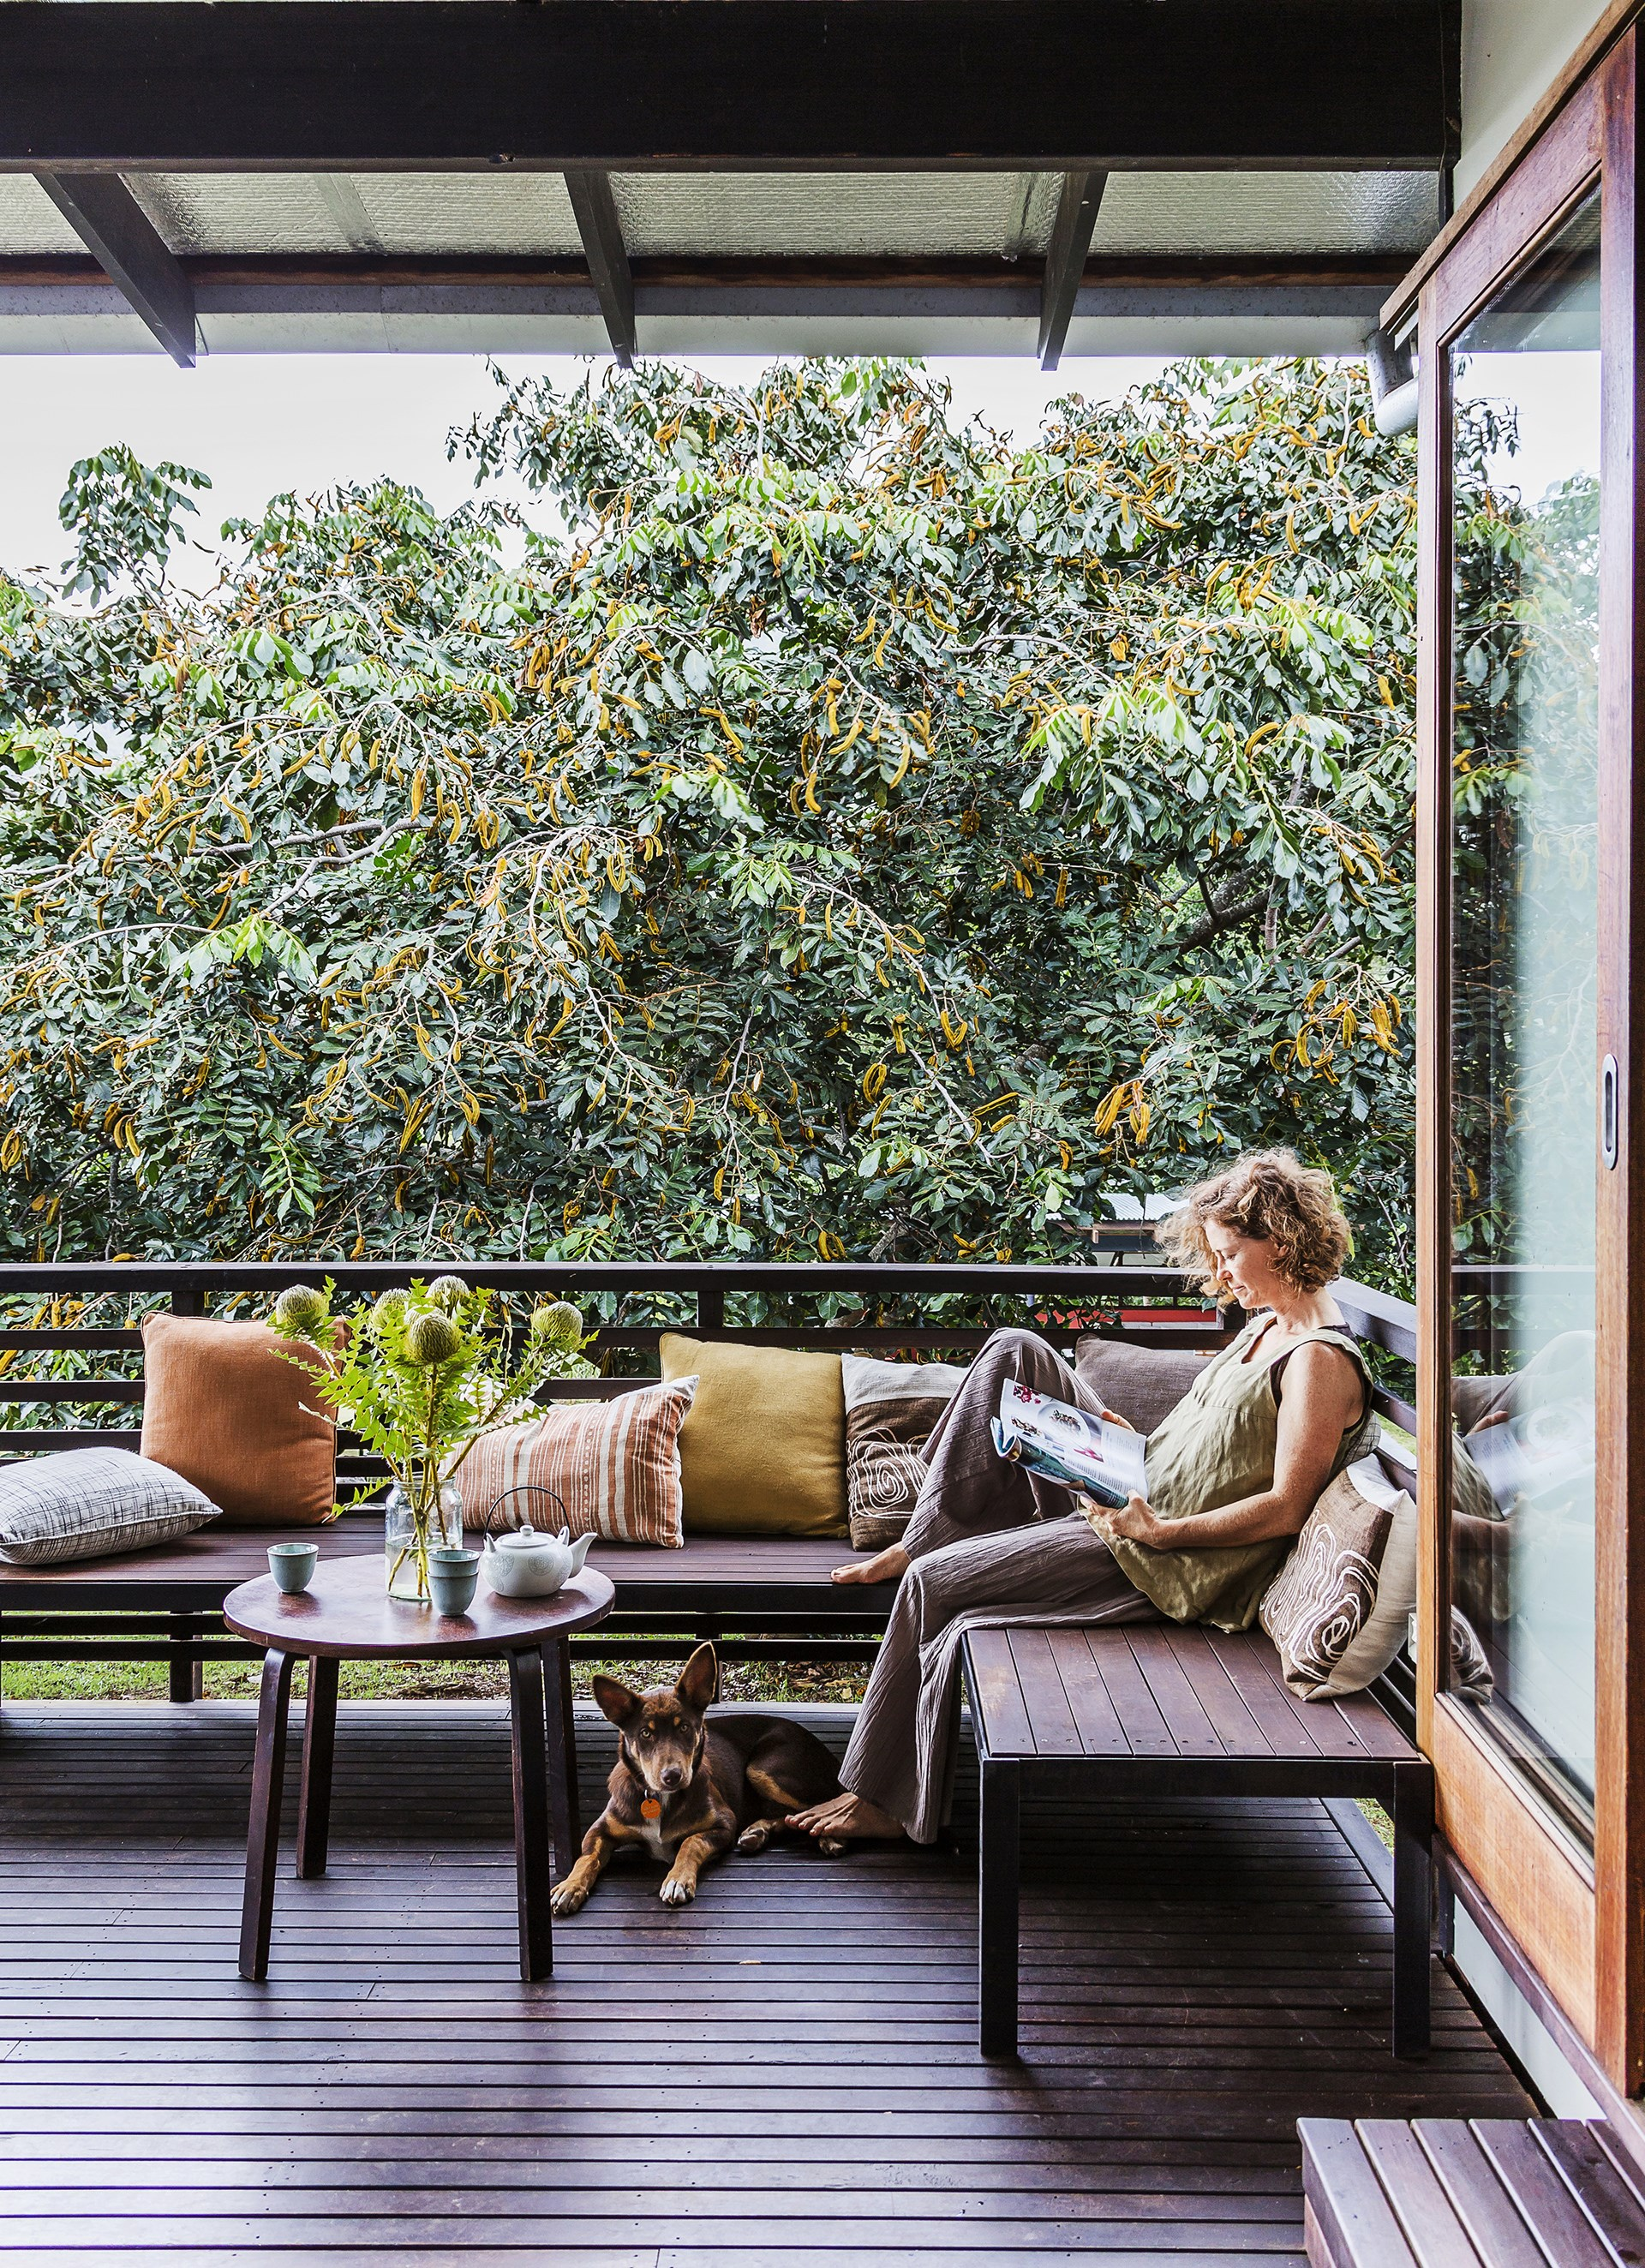 "With a glorious ice-cream bean tree as backdrop, the owner relaxes on the front deck of her [eco-friendly home](http://www.homestolove.com.au/gallery-chris-and-sonias-eco-friendly-queensland-bush-home-1990|target=""_blank"") in the lush hinterland behind Brisbane. *Photo:* Maree Homer"